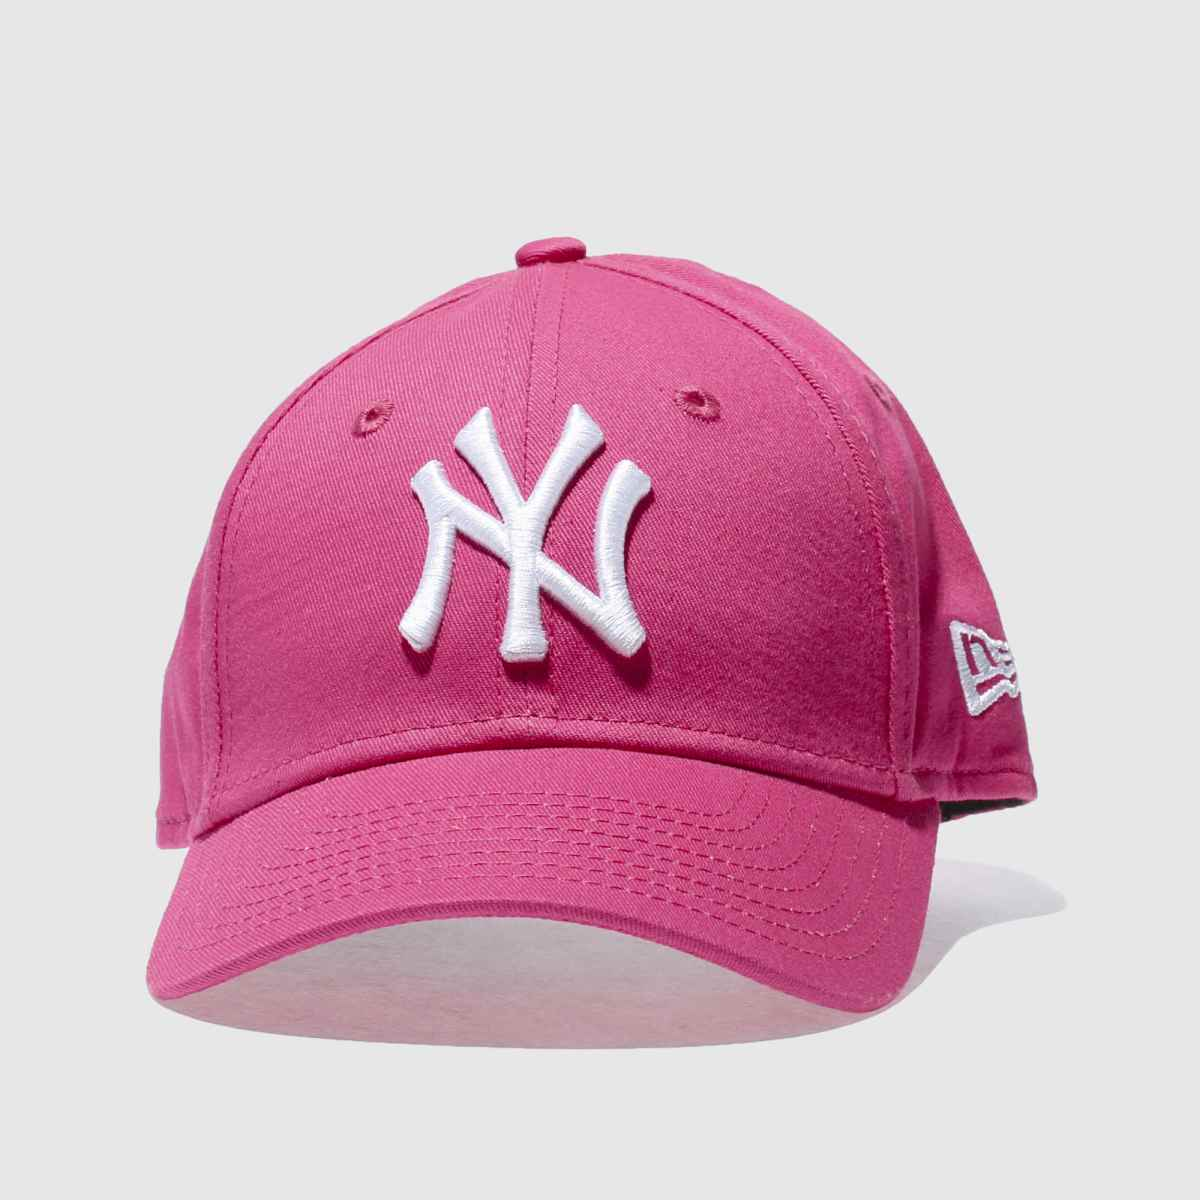 New Era New Era Pink Ny Yankees 9forty